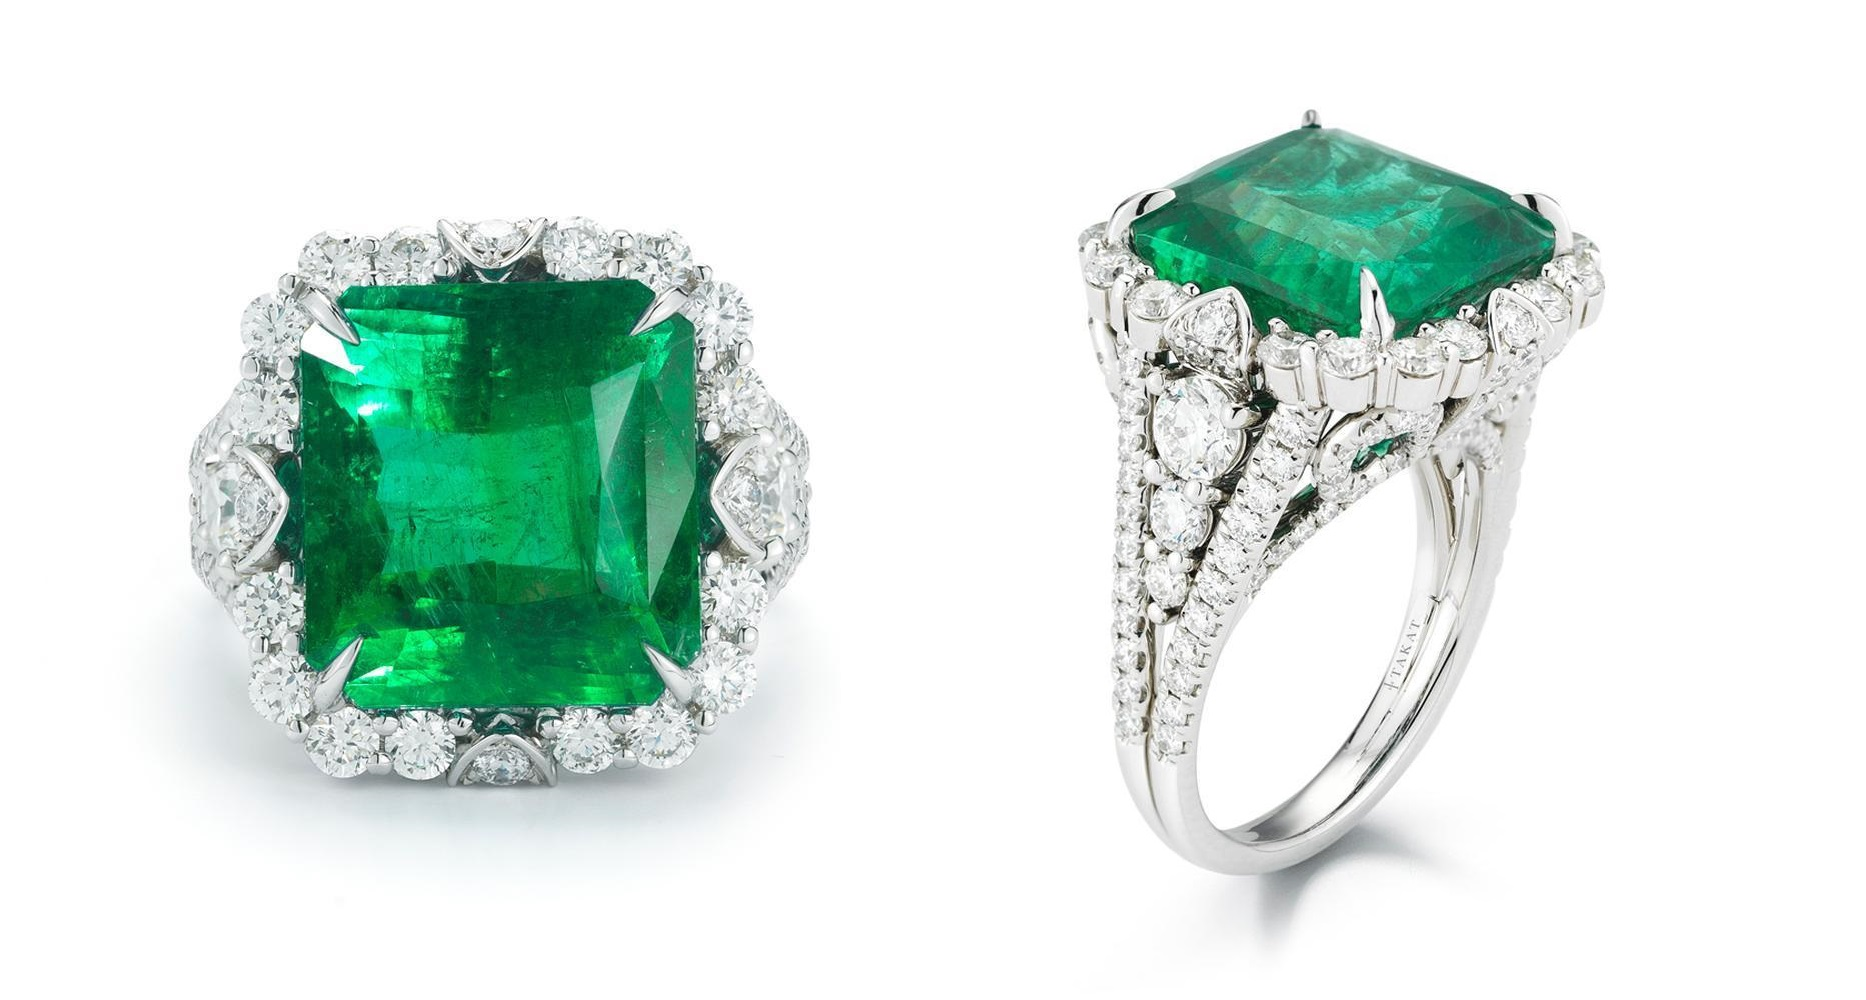 atural 13.11 ct Magnificent EMERALD AND DIAMOND White Gold 18K RING / GIA